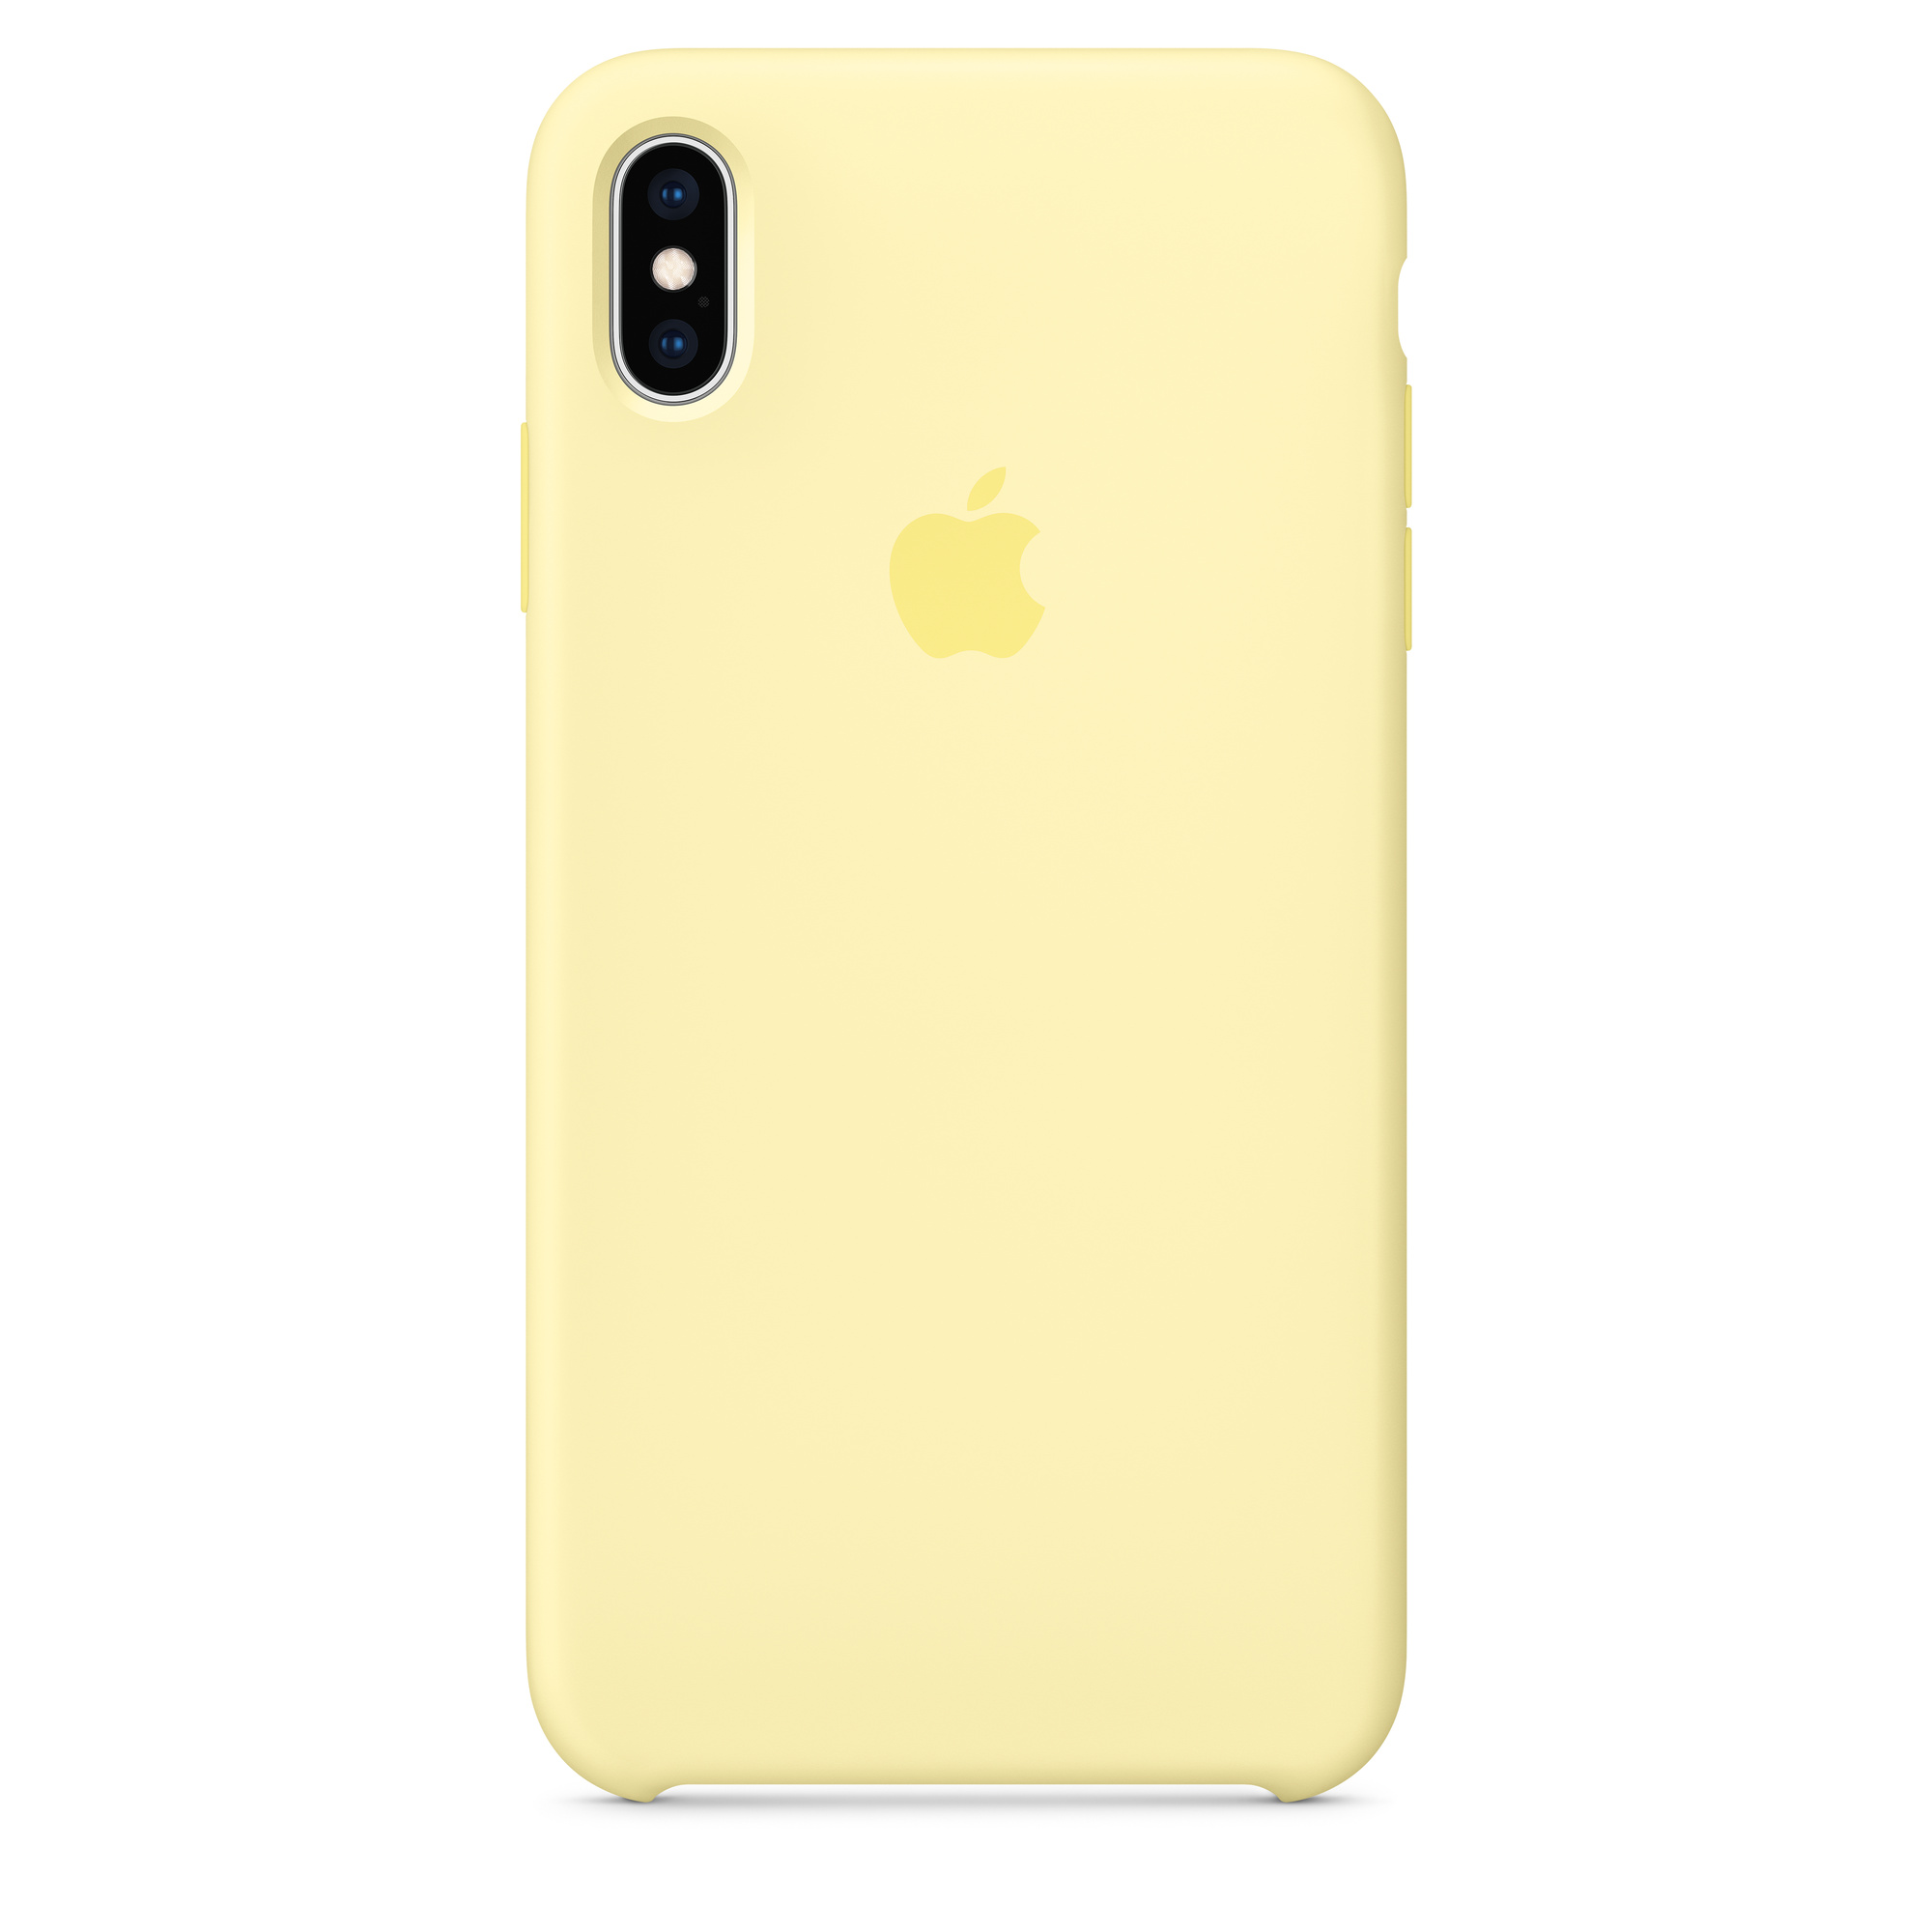 timeless design 4811c bb9f0 iPhone XS Max Silicone Case - Mellow Yellow